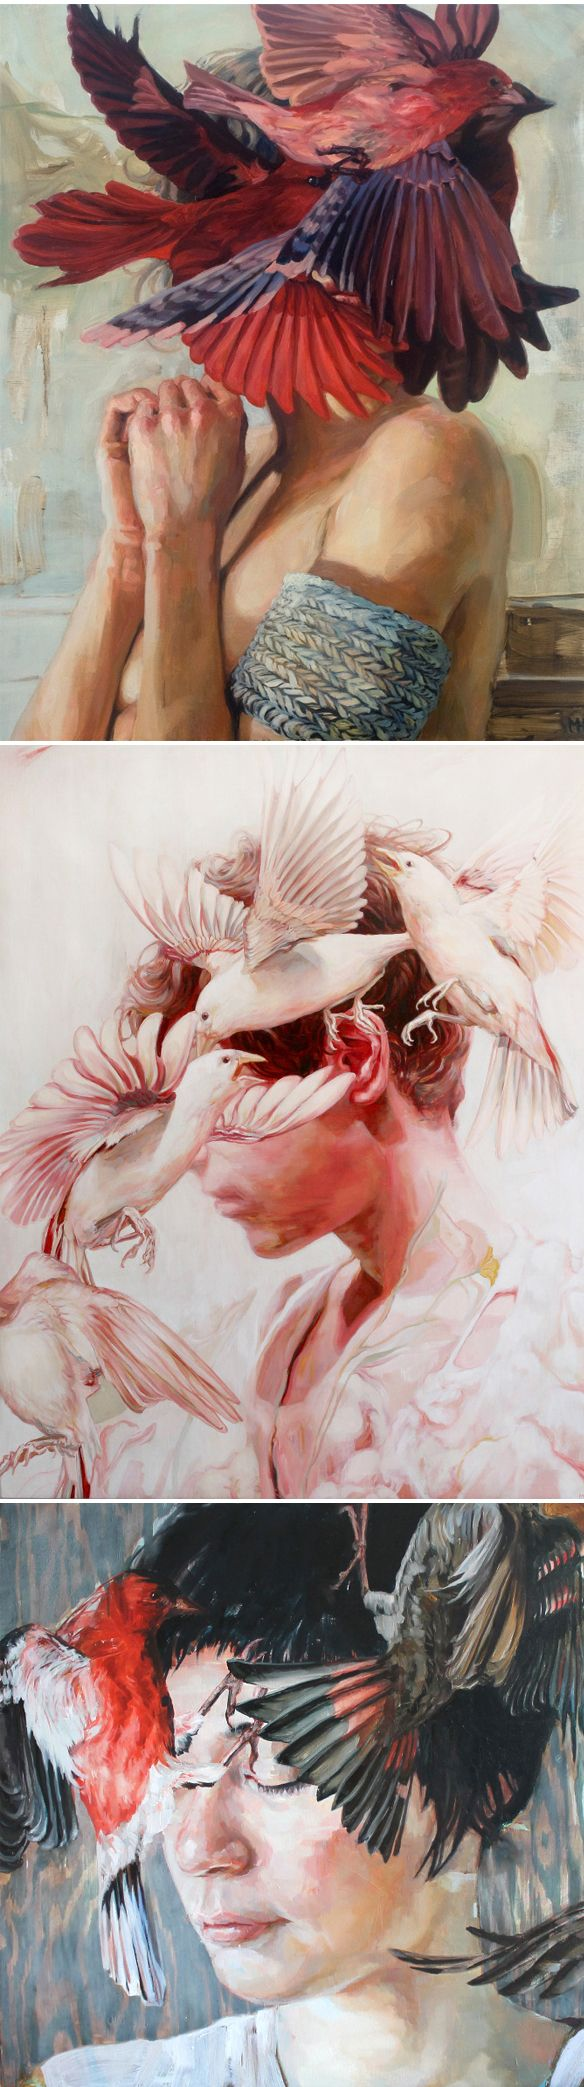 paintings by meghan howland #abcLoveList